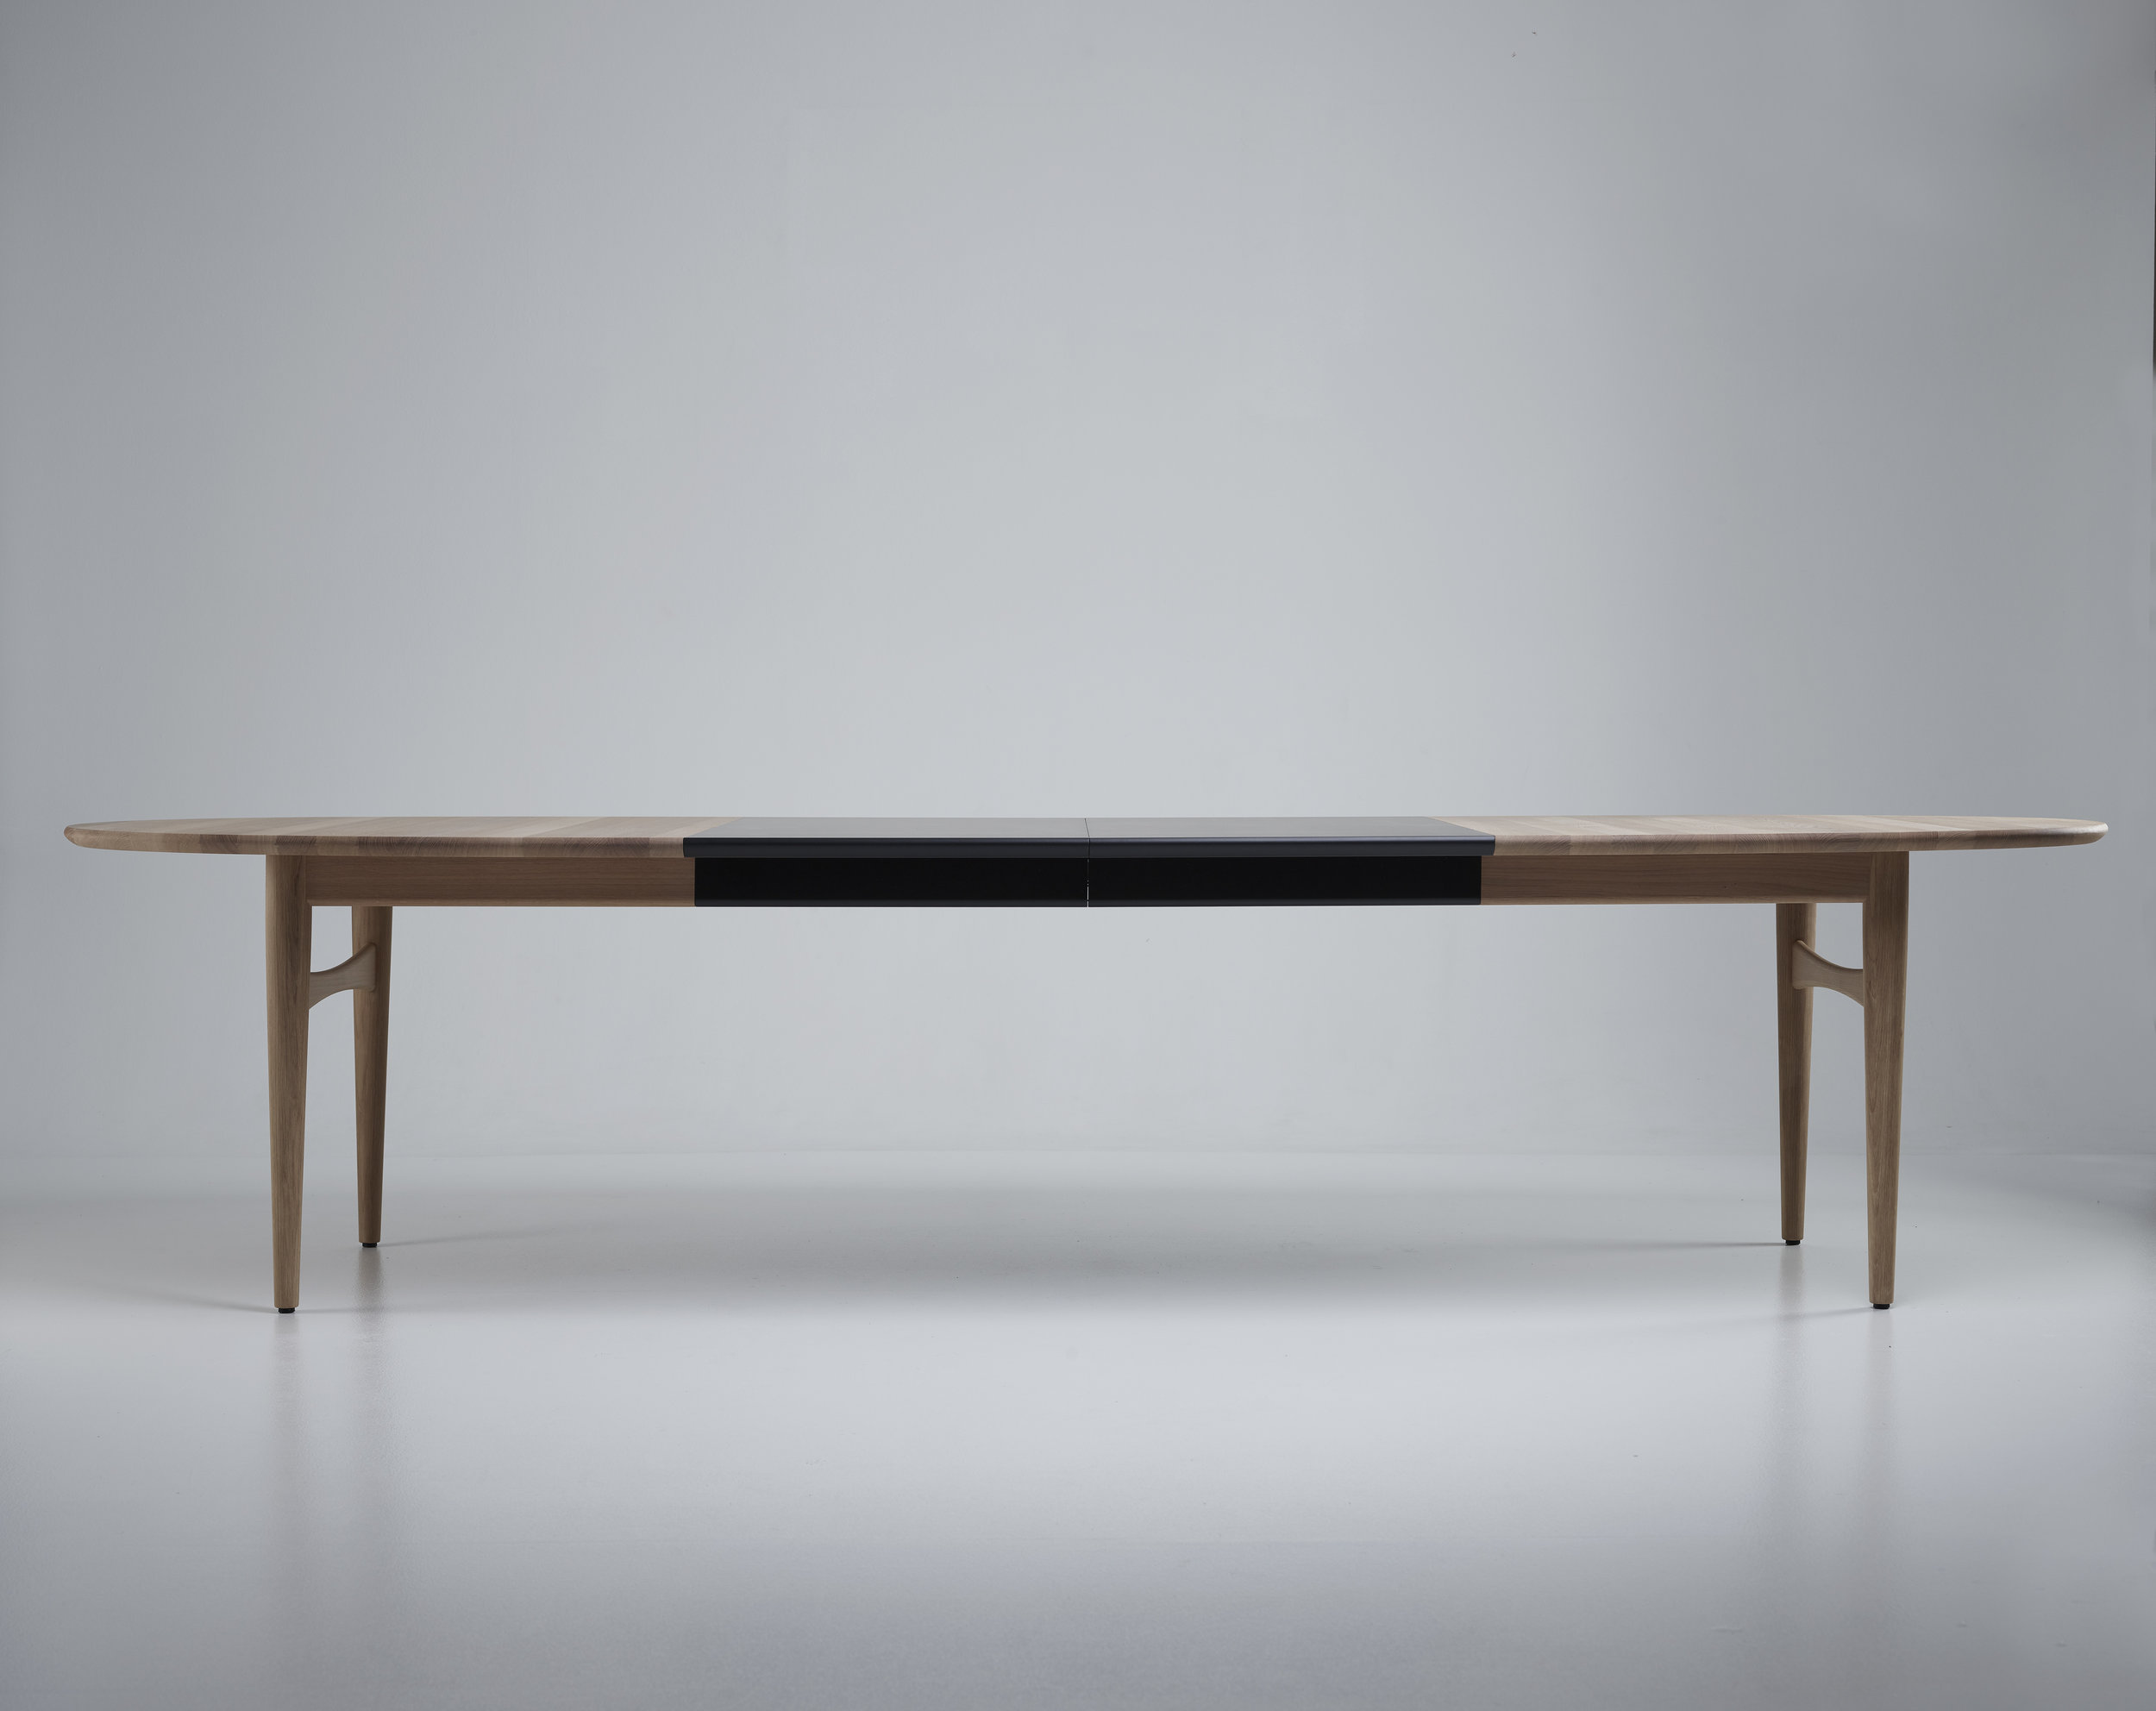 Øya dining table